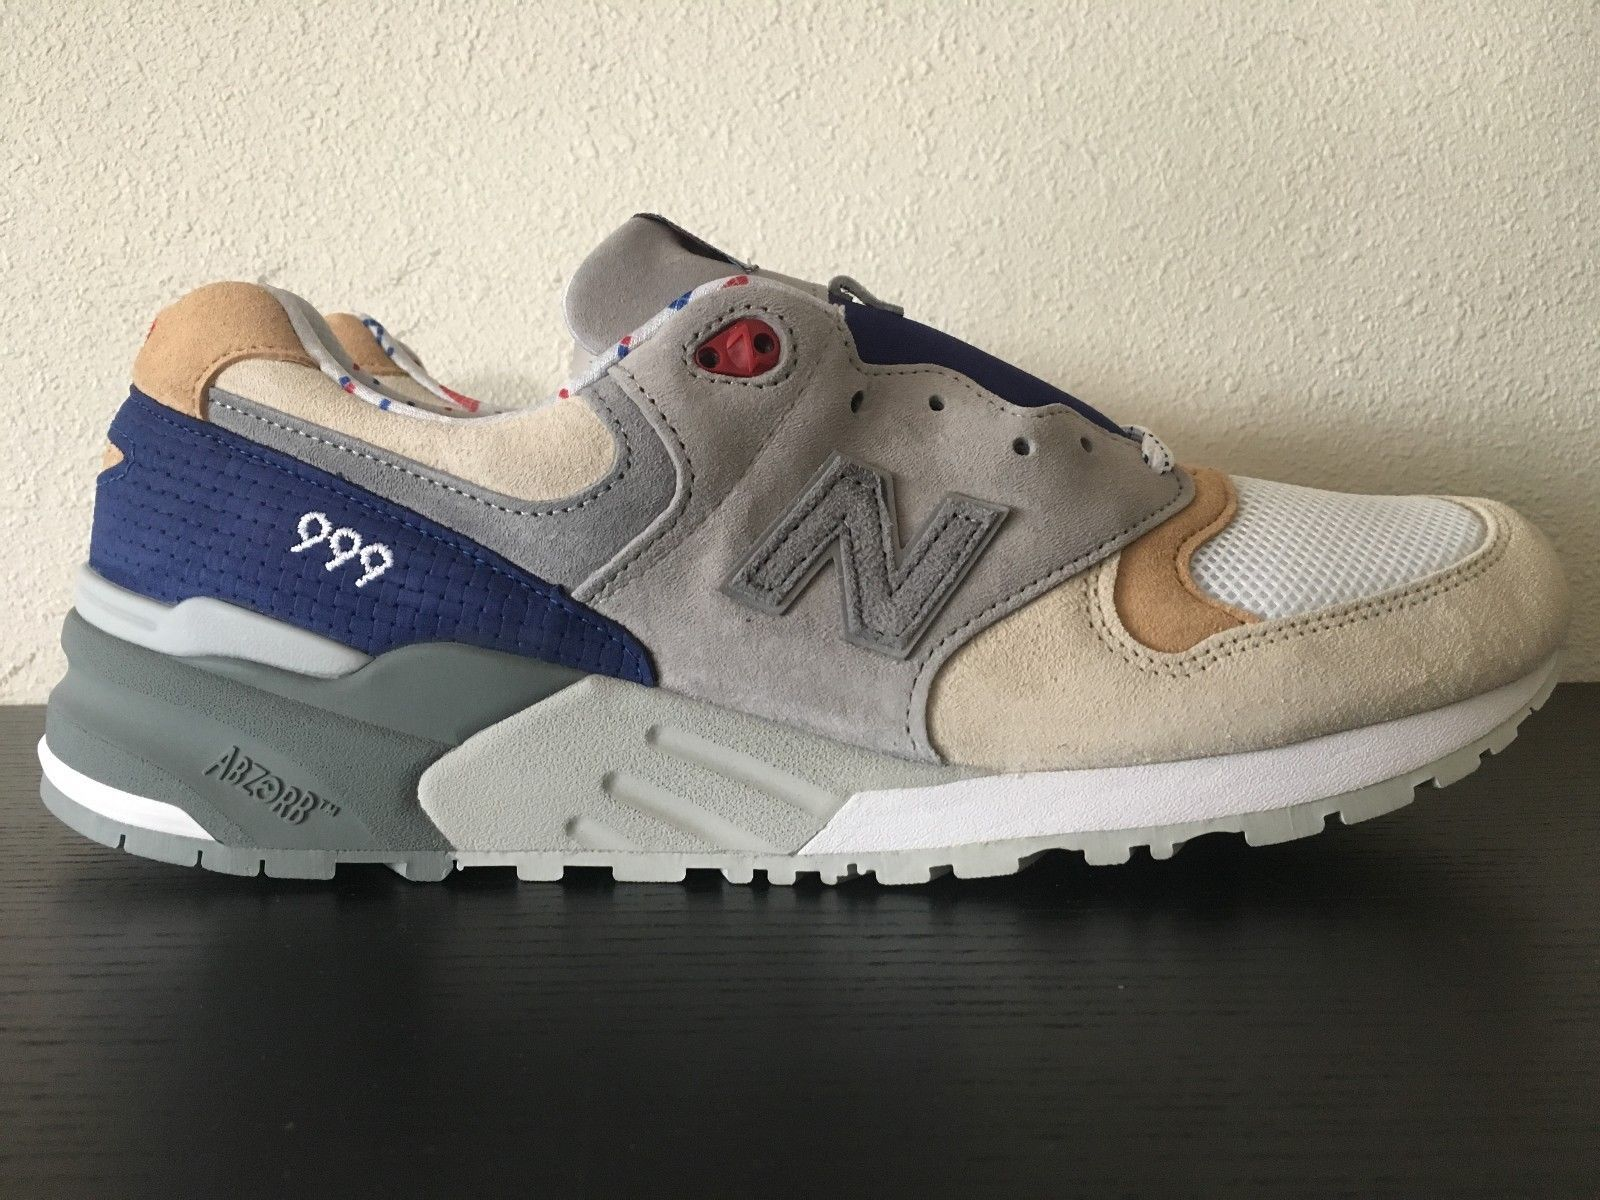 official photos e8327 ff634 Concepts Balance 999 Kennedy 12 DS in Box 2017 | New Balance ...